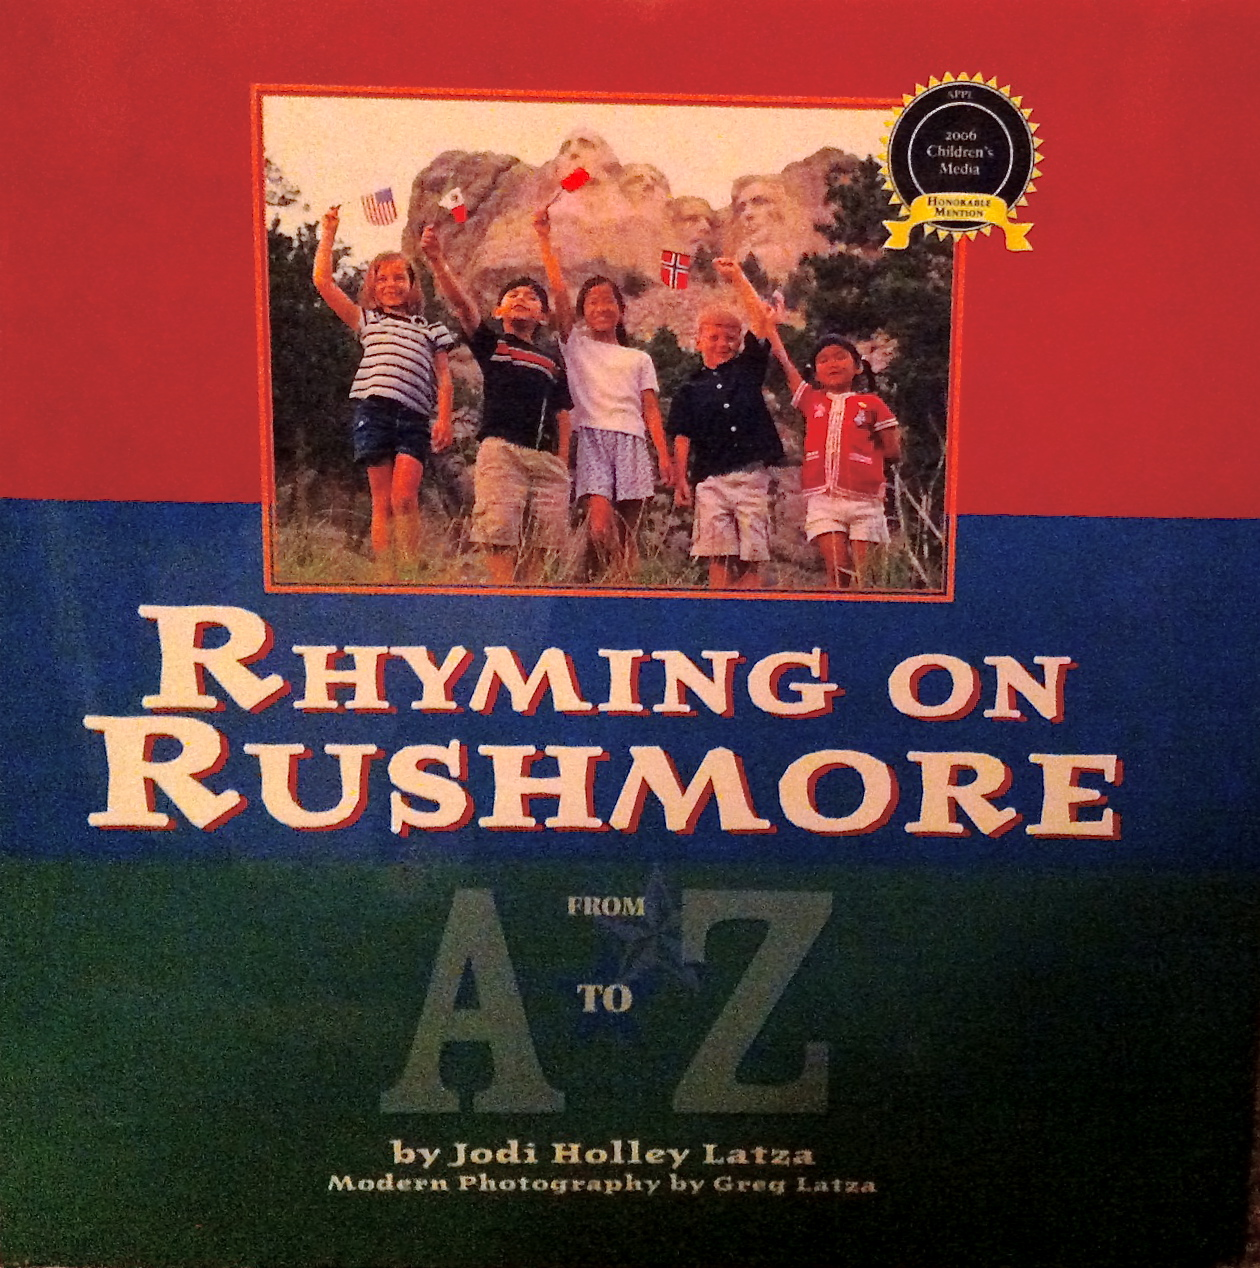 Rhyming on Rushmore: From A-Z Jodi Holley Latza